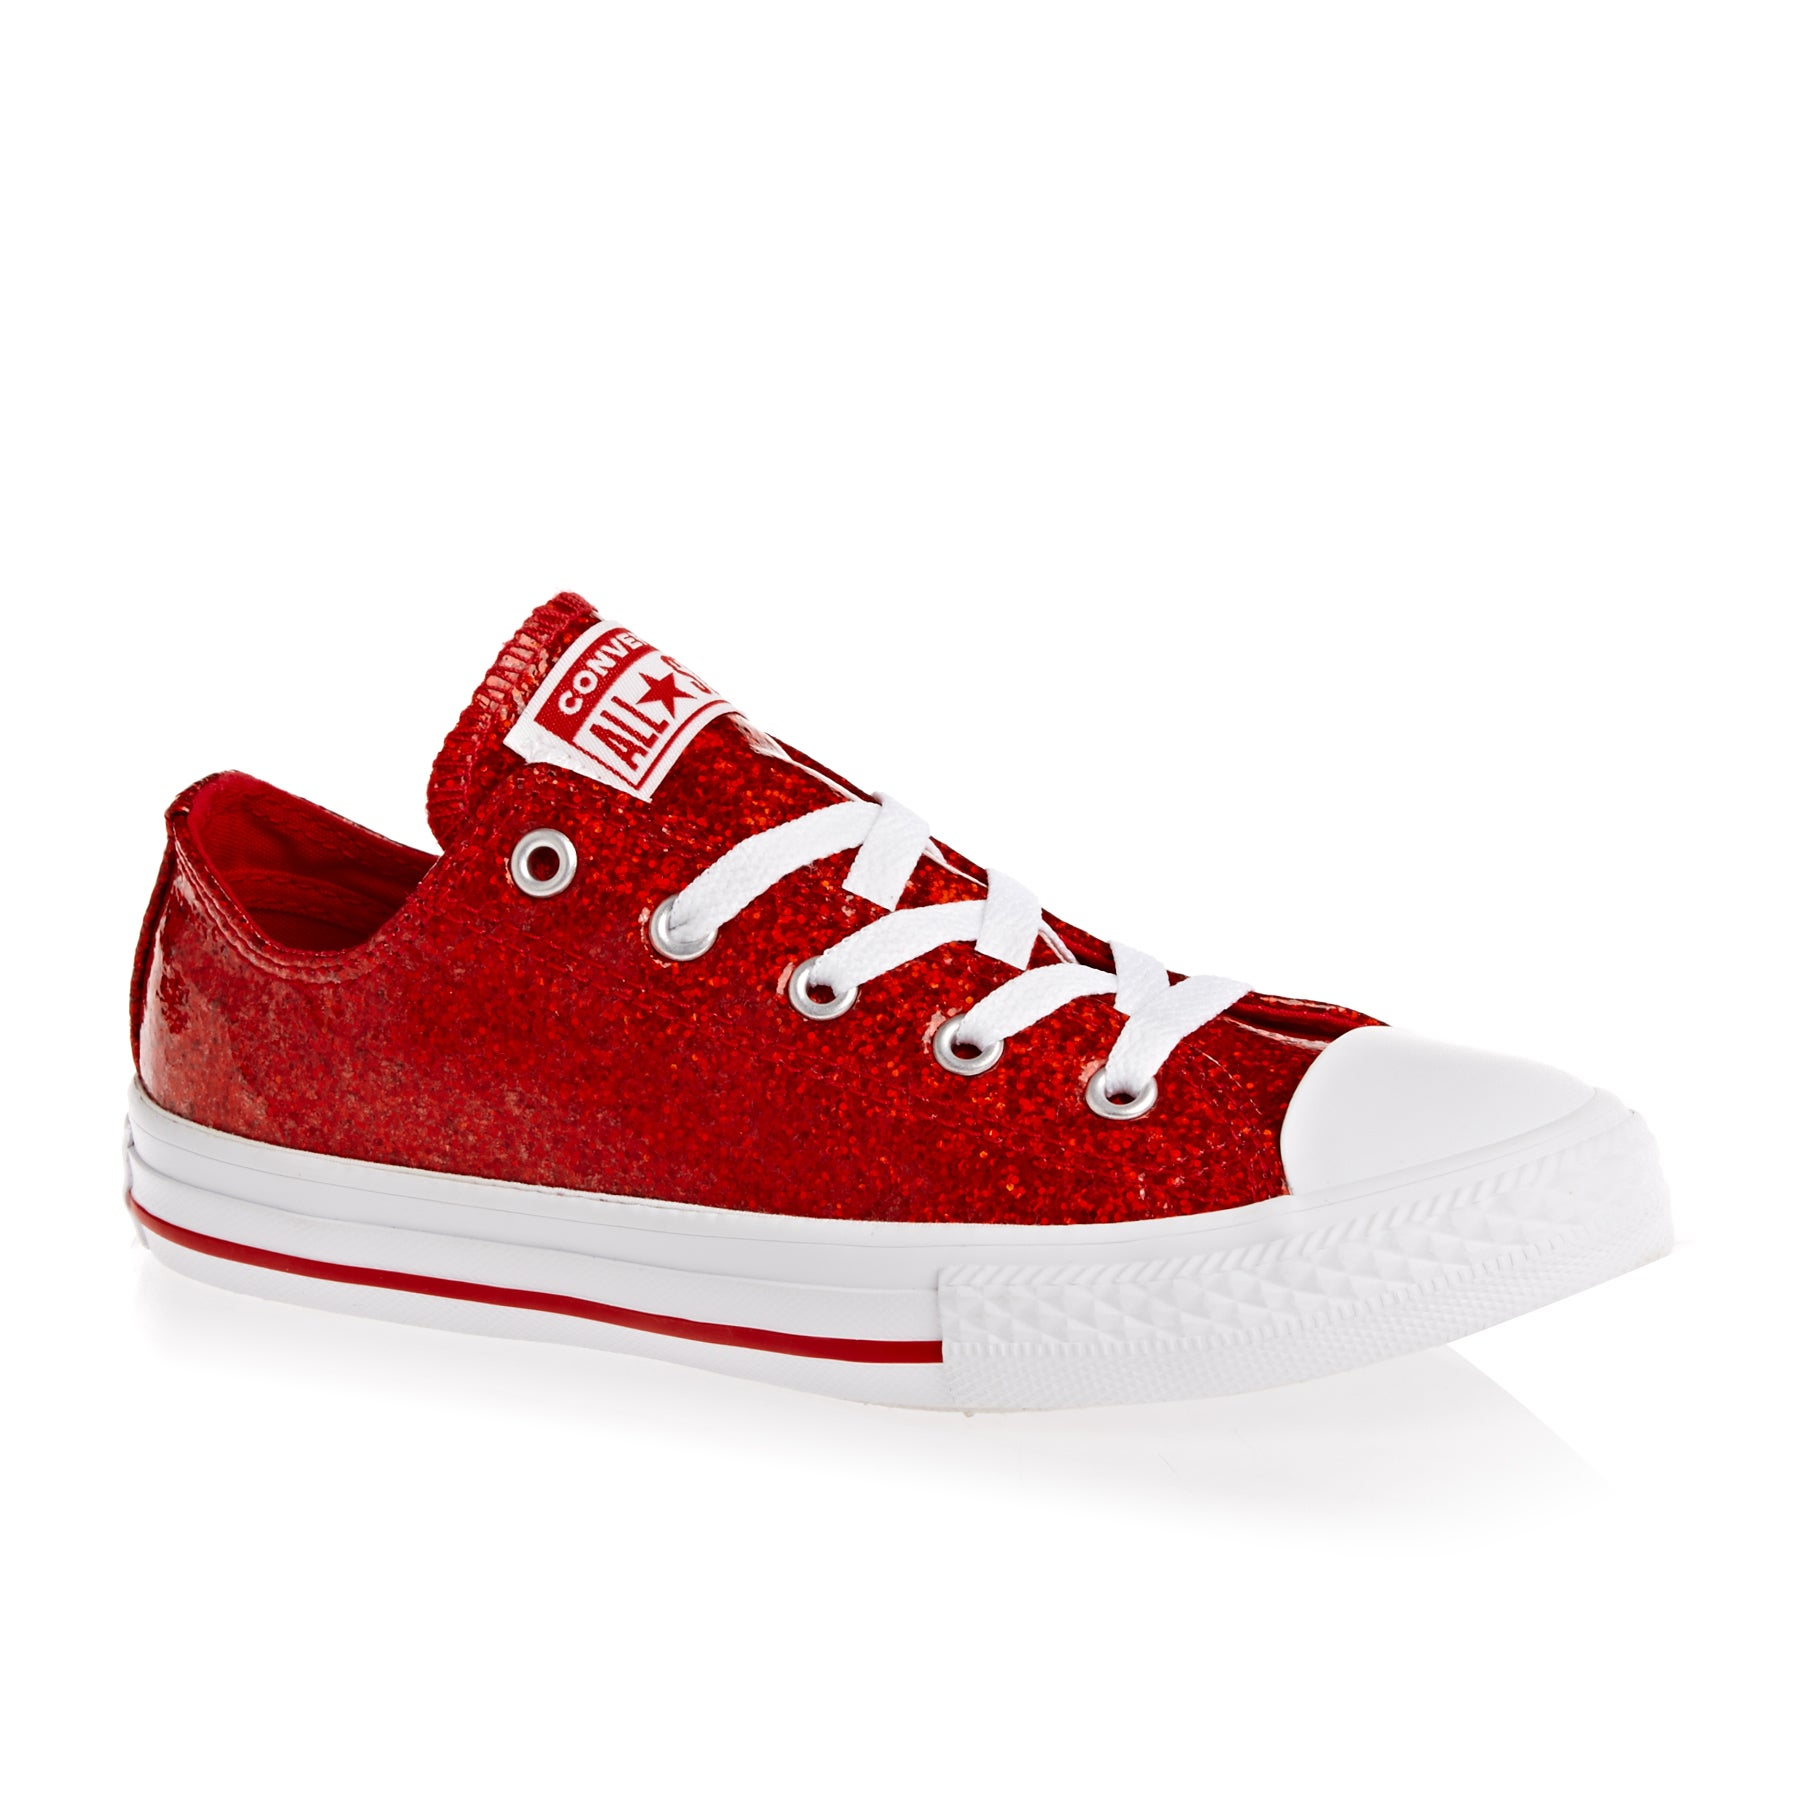 Converse Chuck Taylor Glitter All Stars OX Girls Shoes - Cherry Red White White